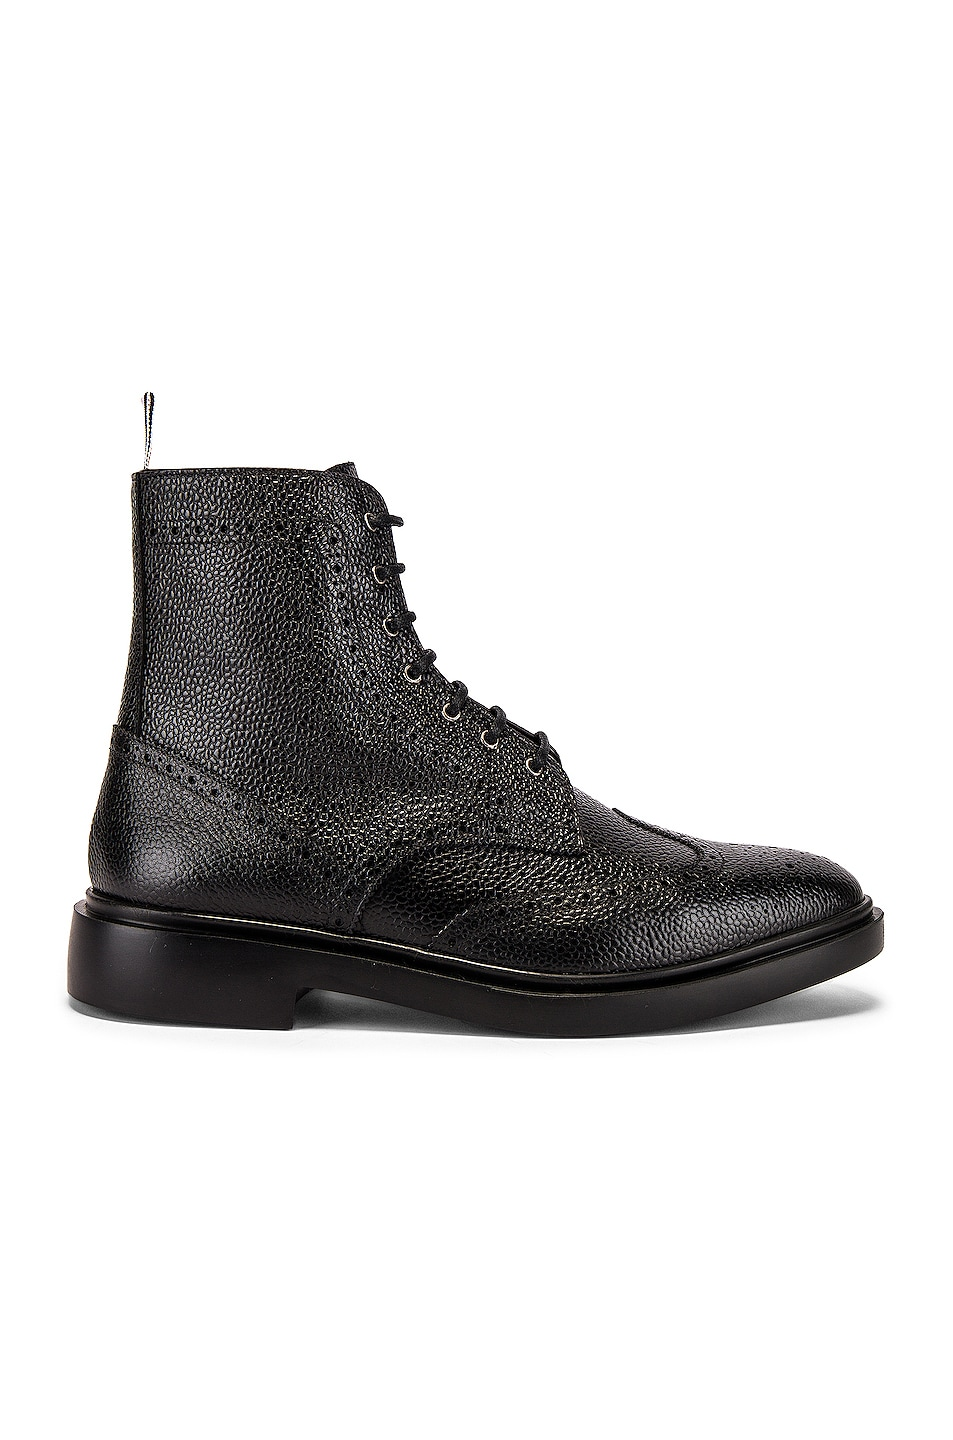 Image 2 of Thom Browne Classic Wingtip Boot in Black